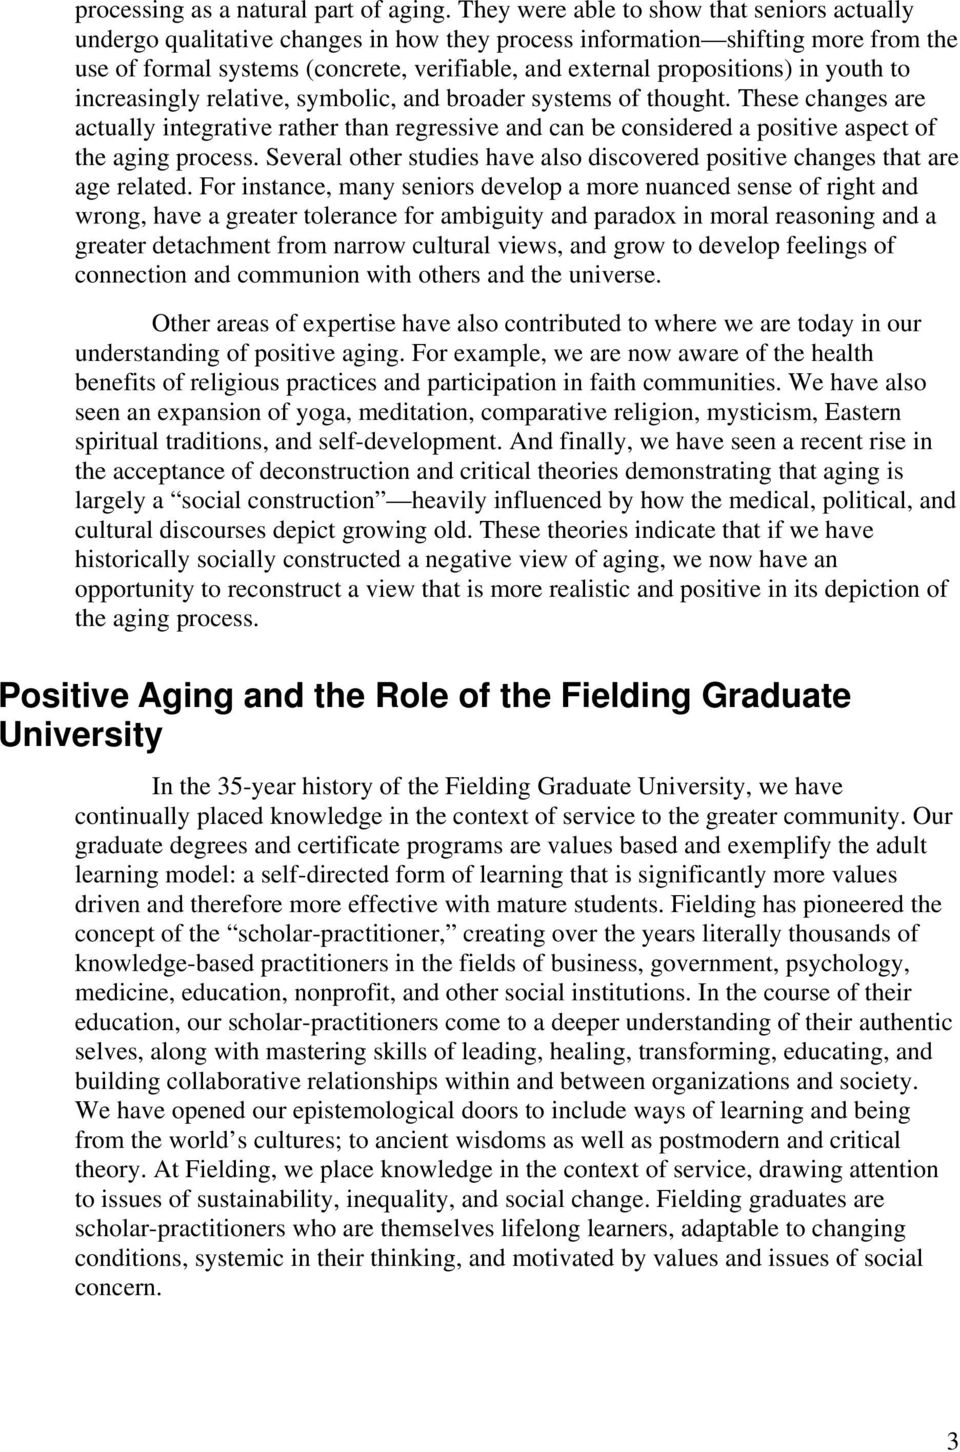 in youth to increasingly relative, symbolic, and broader systems of thought. These changes are actually integrative rather than regressive and can be considered a positive aspect of the aging process.